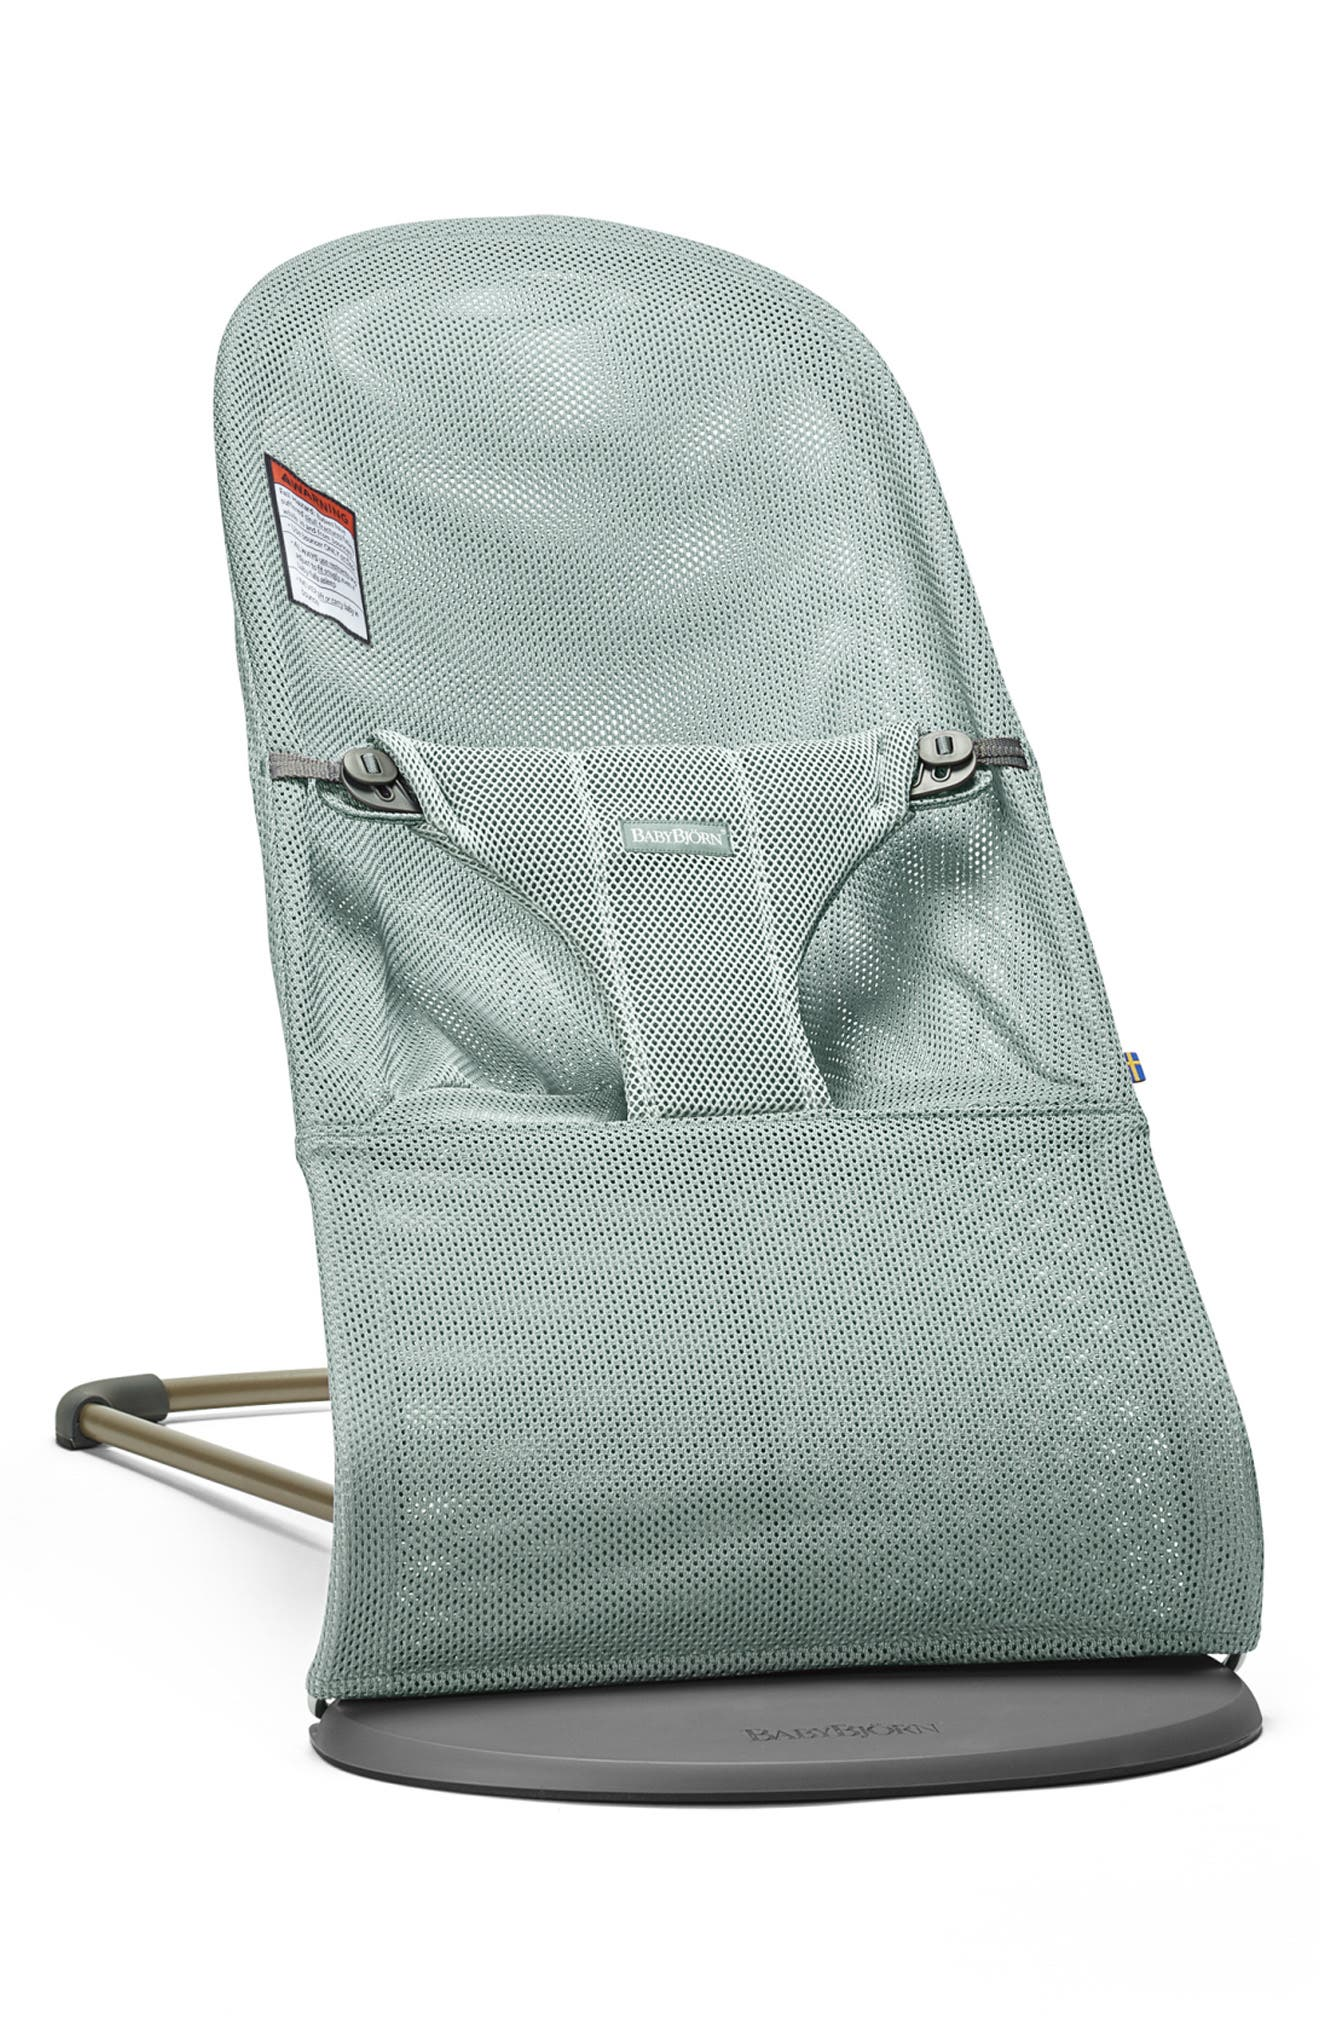 Infant Babybjorn Bouncer Bliss Convertible Mesh Baby Bouncer Size One Size  Green